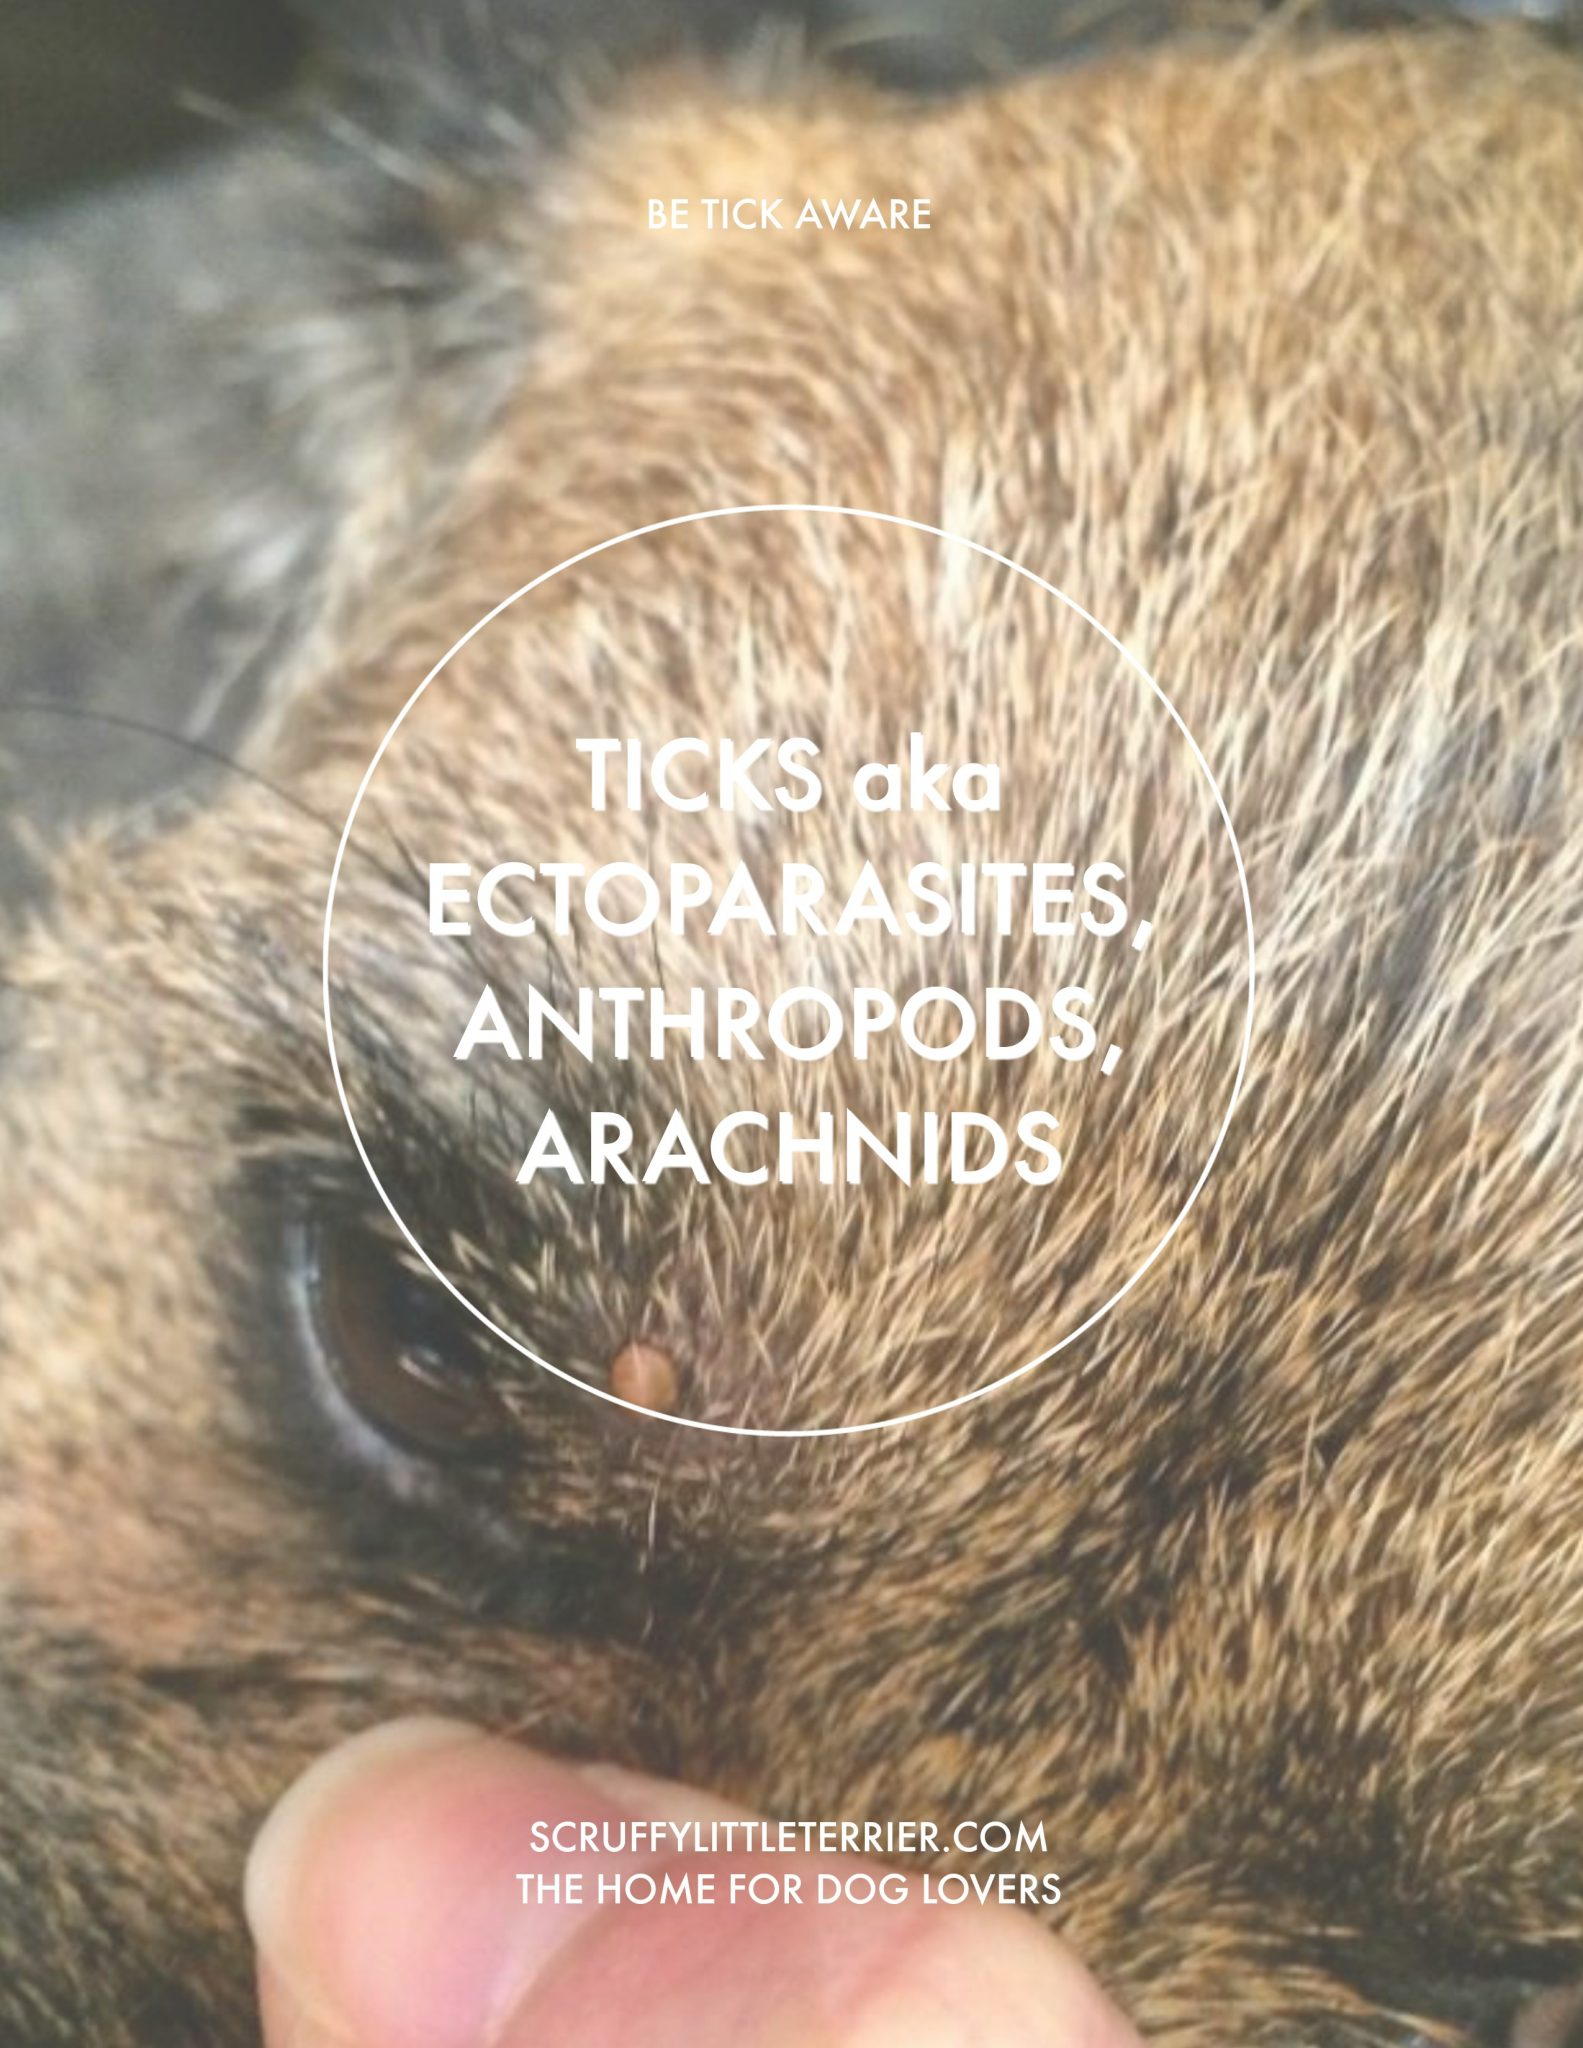 Ticks {Ticks aka Ectoparasites, Anthropods, Arachnids} #ticks #doghealth www.scruffylittleterrier.com